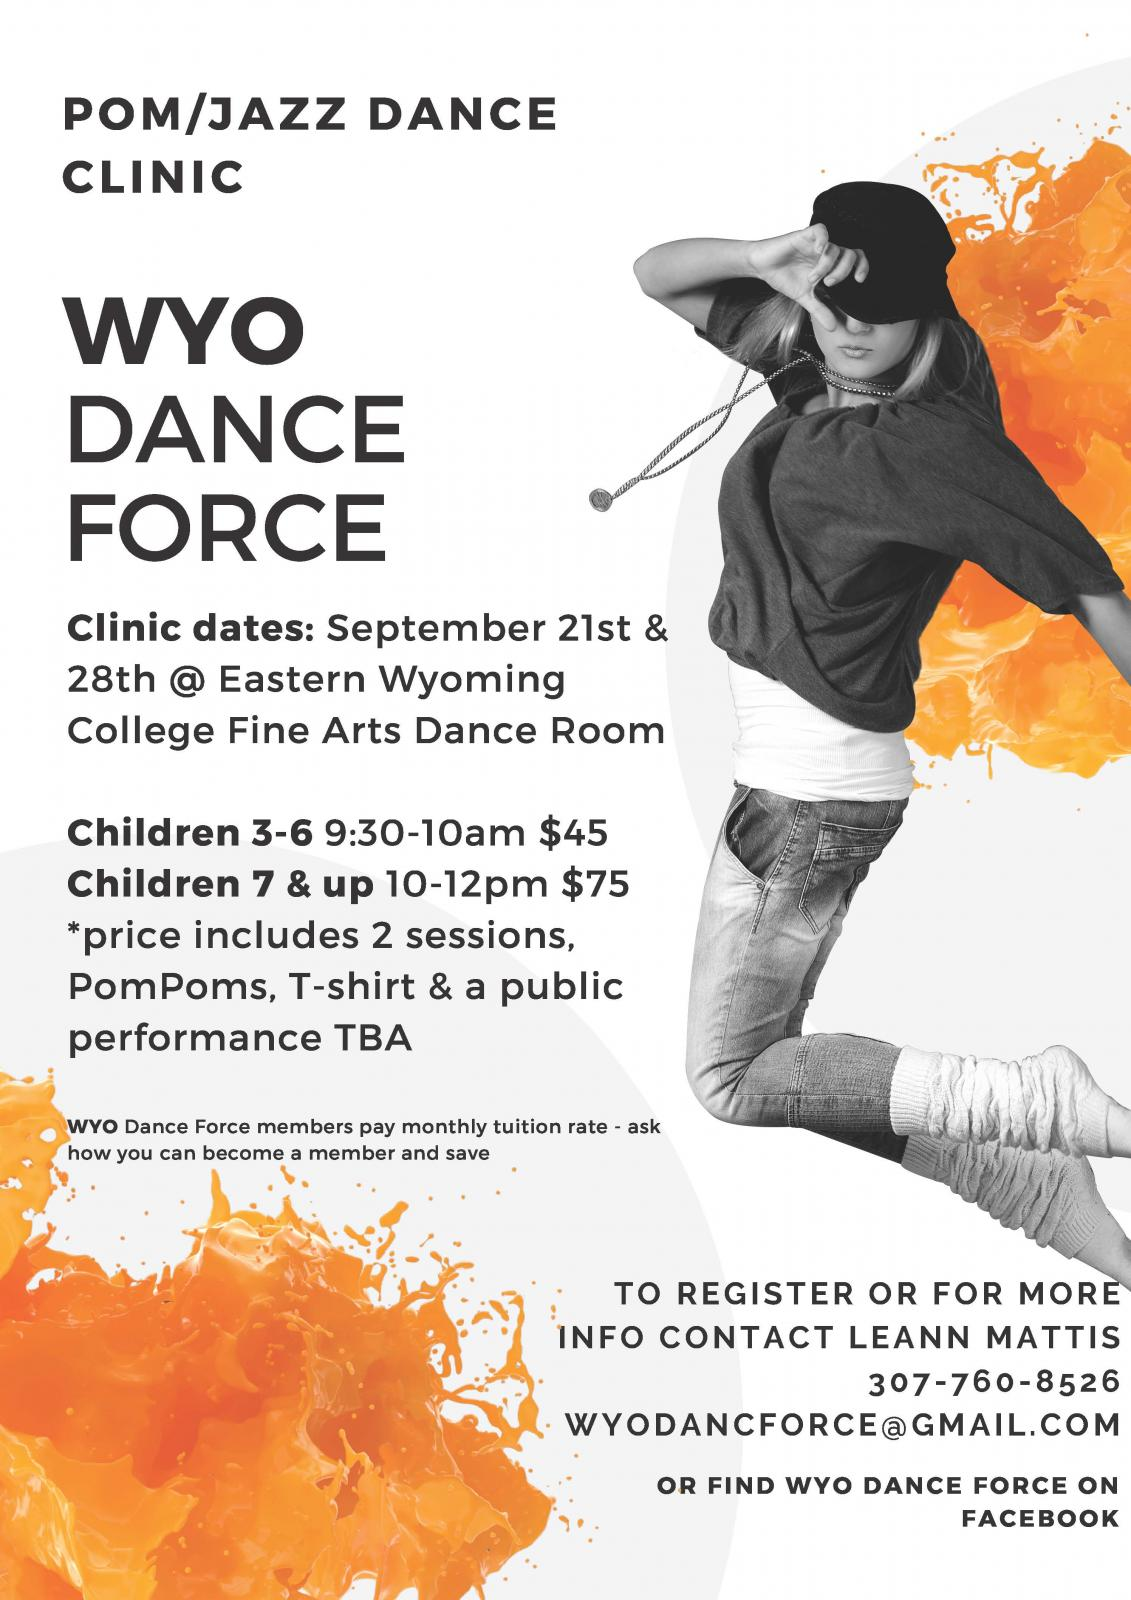 Event Promo Photo For WYO Dance Force Clinic Dates